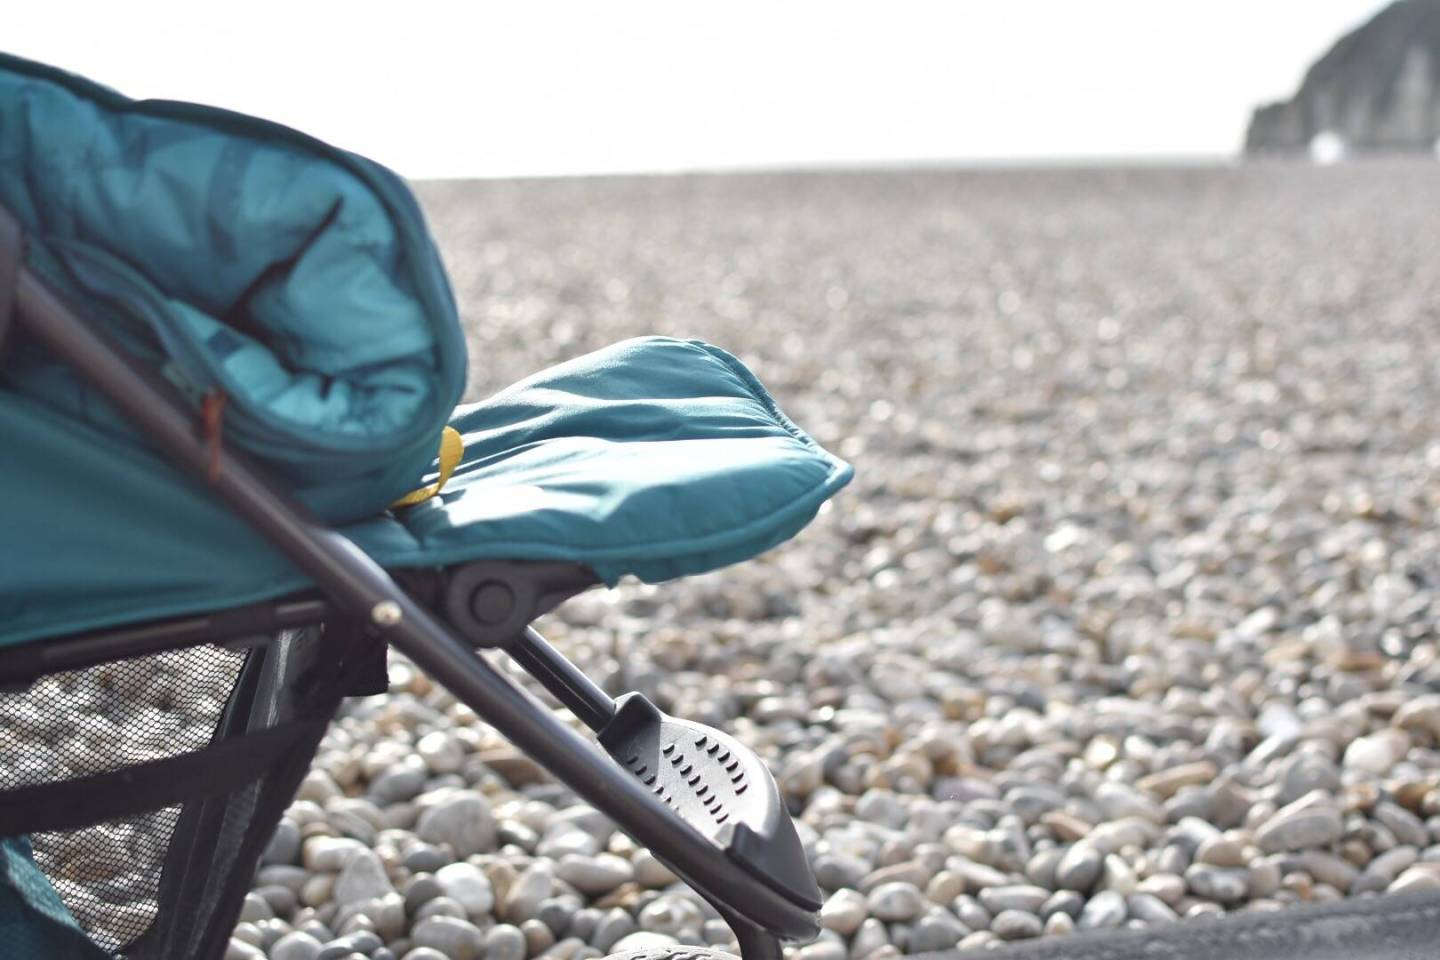 reviewing the Pushmatic pushchair by Koochi, I really liked how light weight and easy to push this is